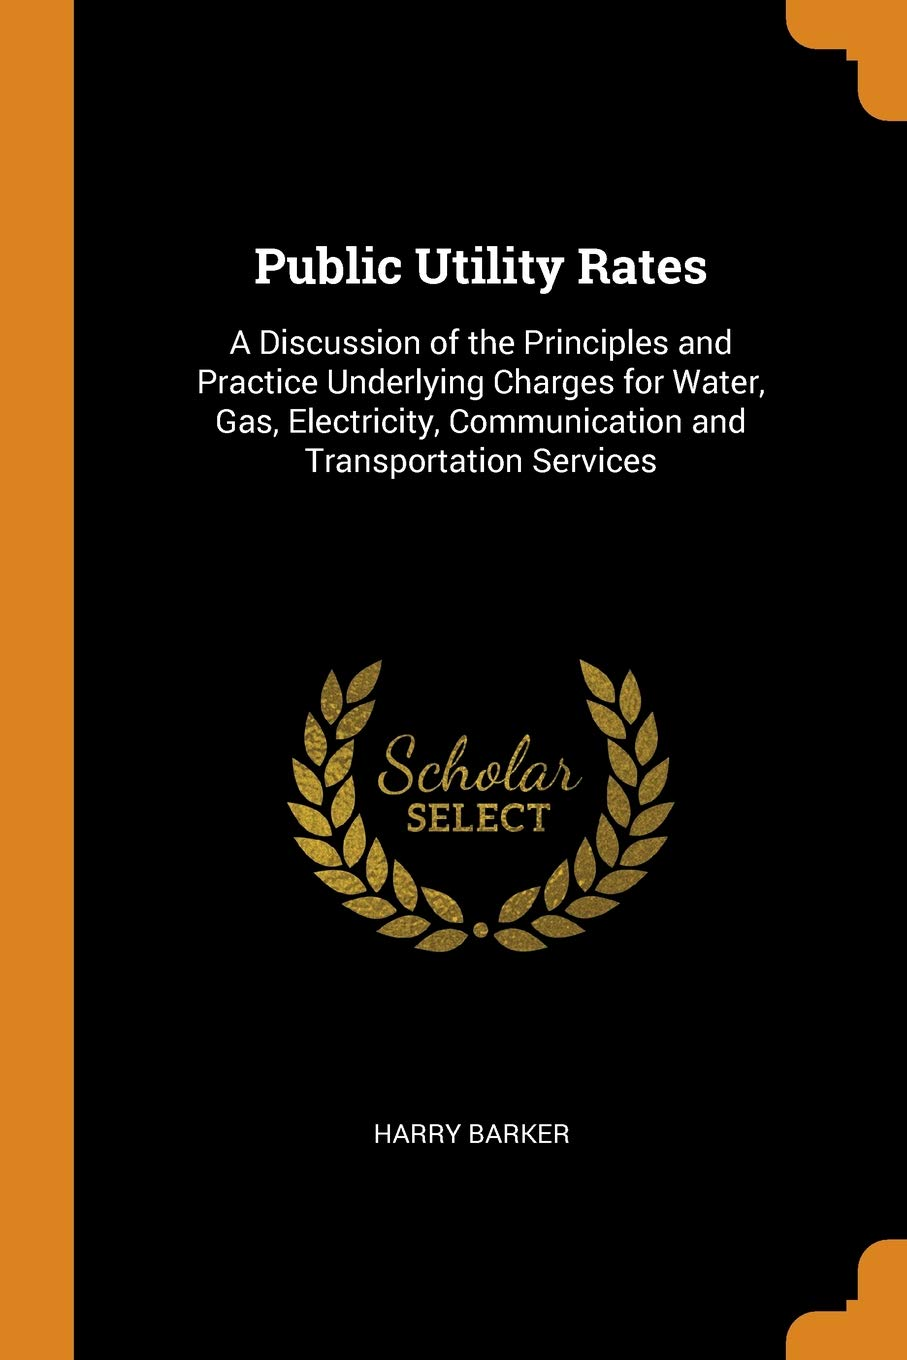 Public Utility Rates: A Discussion of the Principles and